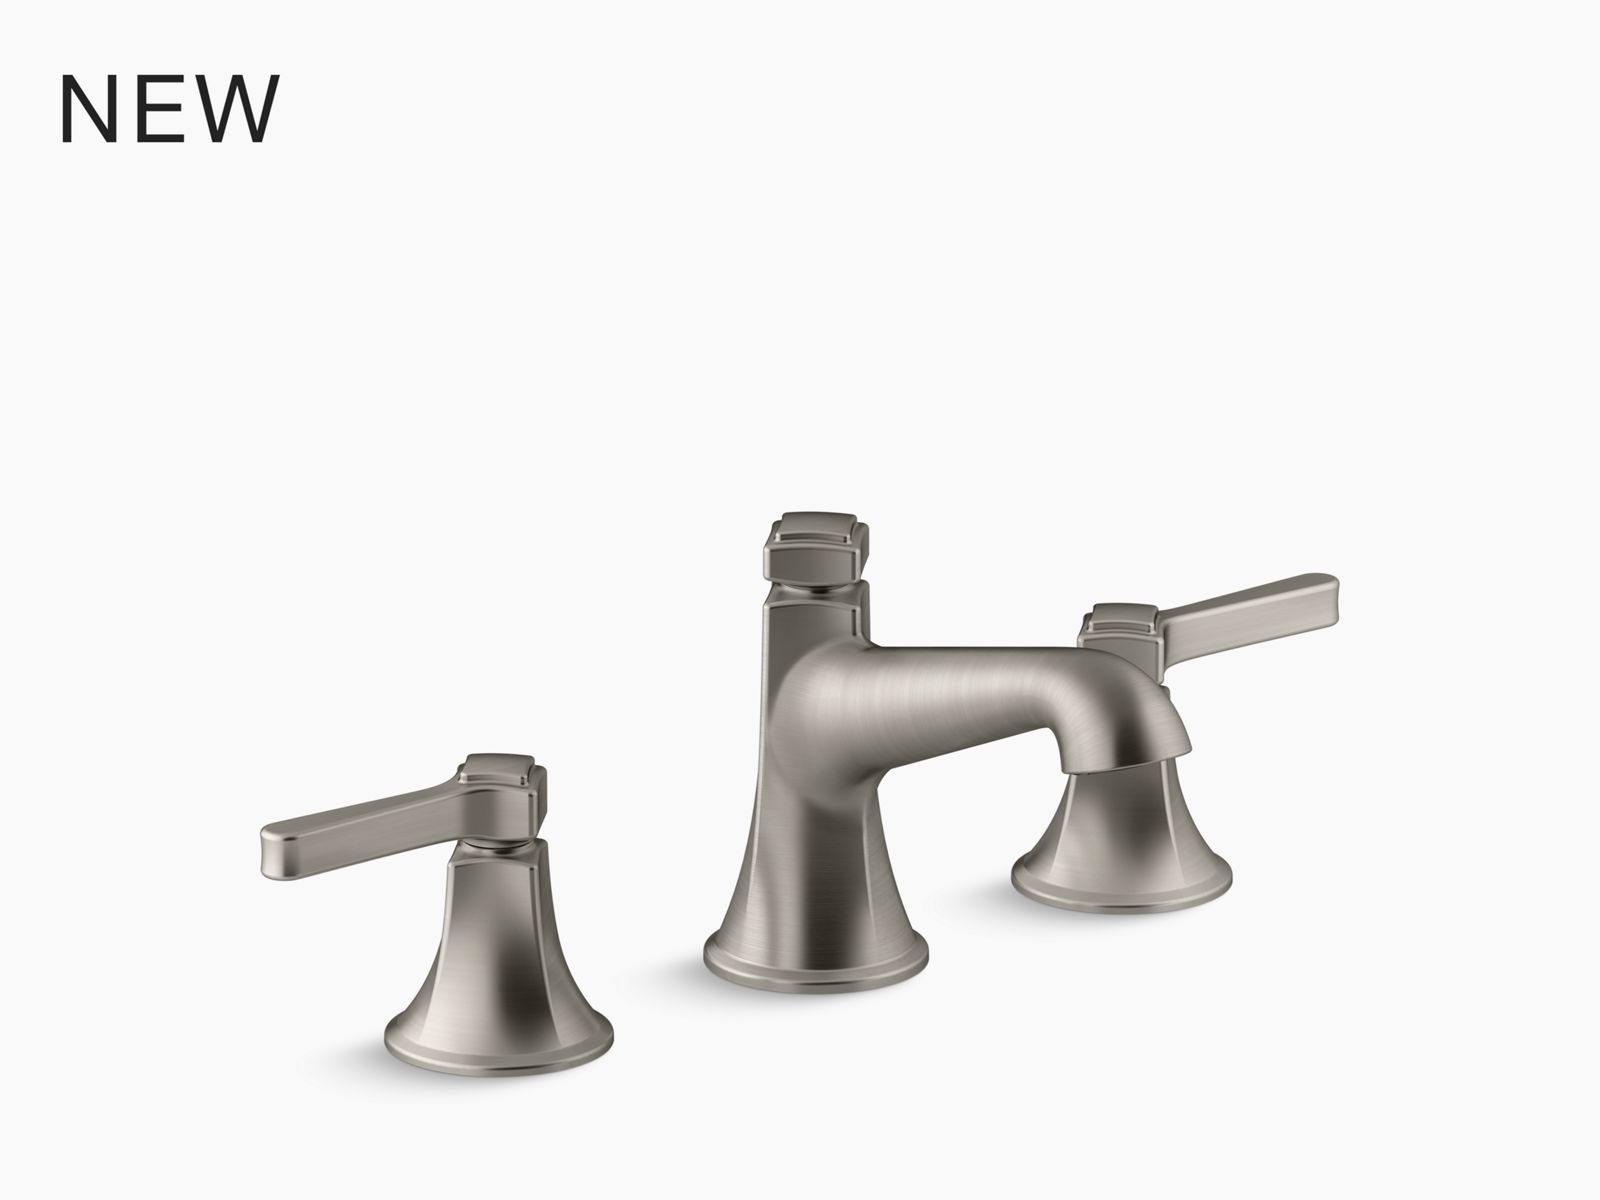 kumin touchless faucet with kinesis sensor technology and temperature mixer ac powered